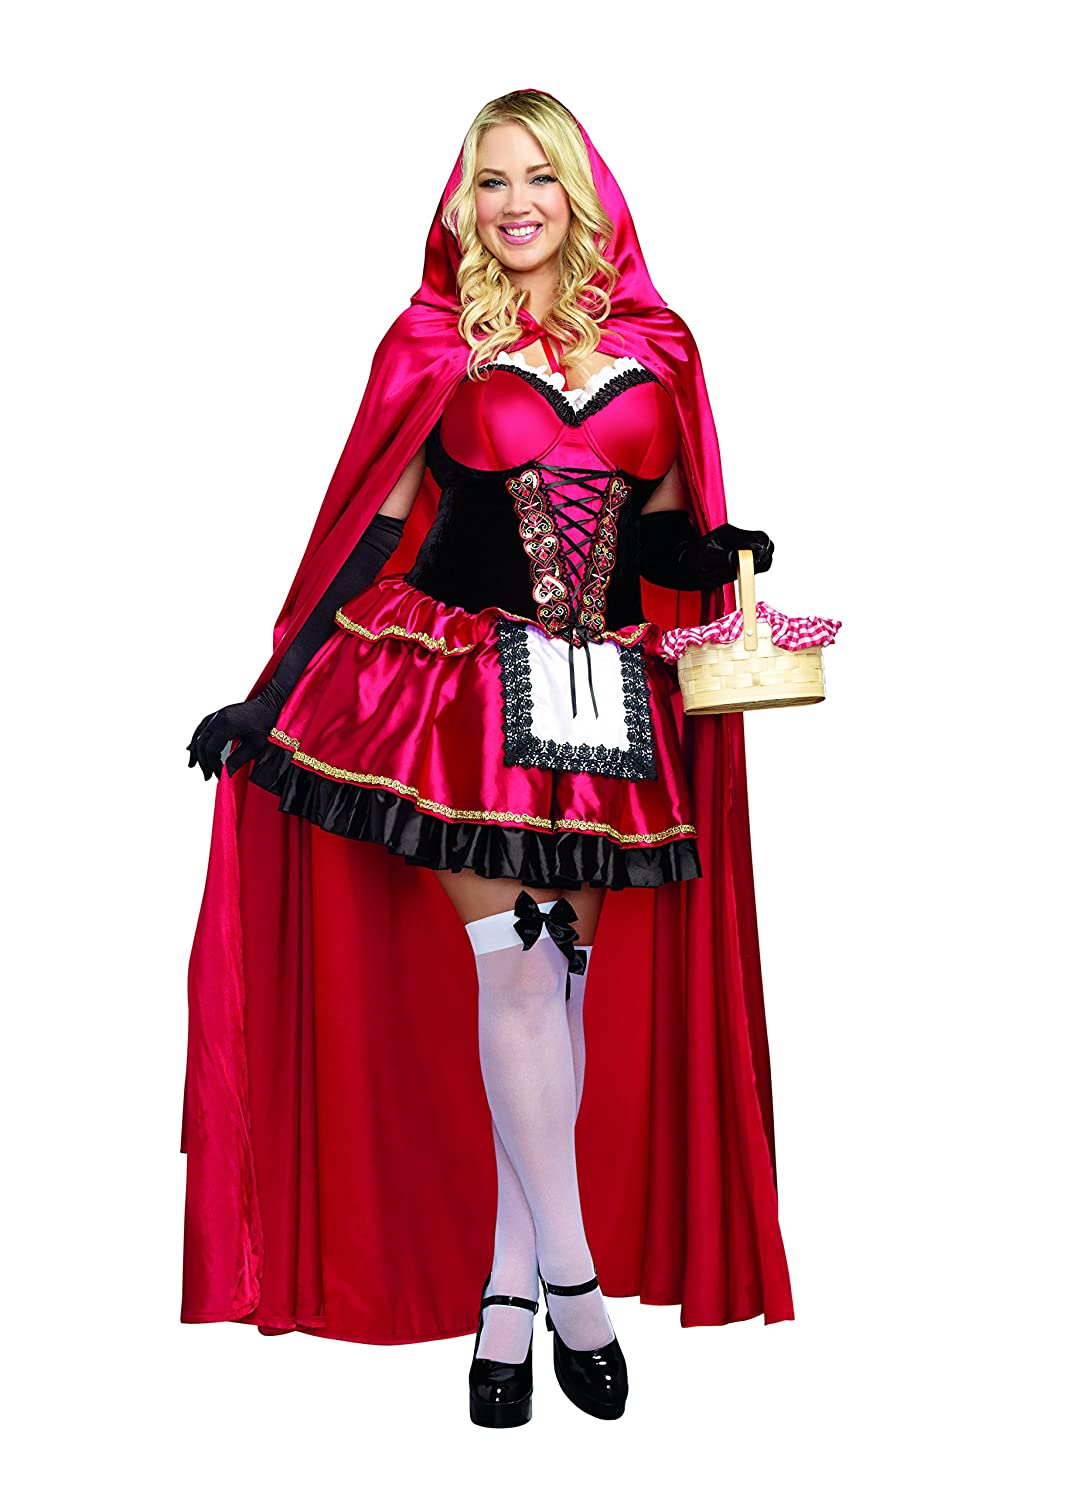 Amazon.com Dreamgirl Womenu0027s Plus-Size Little Red Riding Hood Costume Clothing  sc 1 st  Amazon.com & Amazon.com: Dreamgirl Womenu0027s Plus-Size Little Red Riding Hood ...